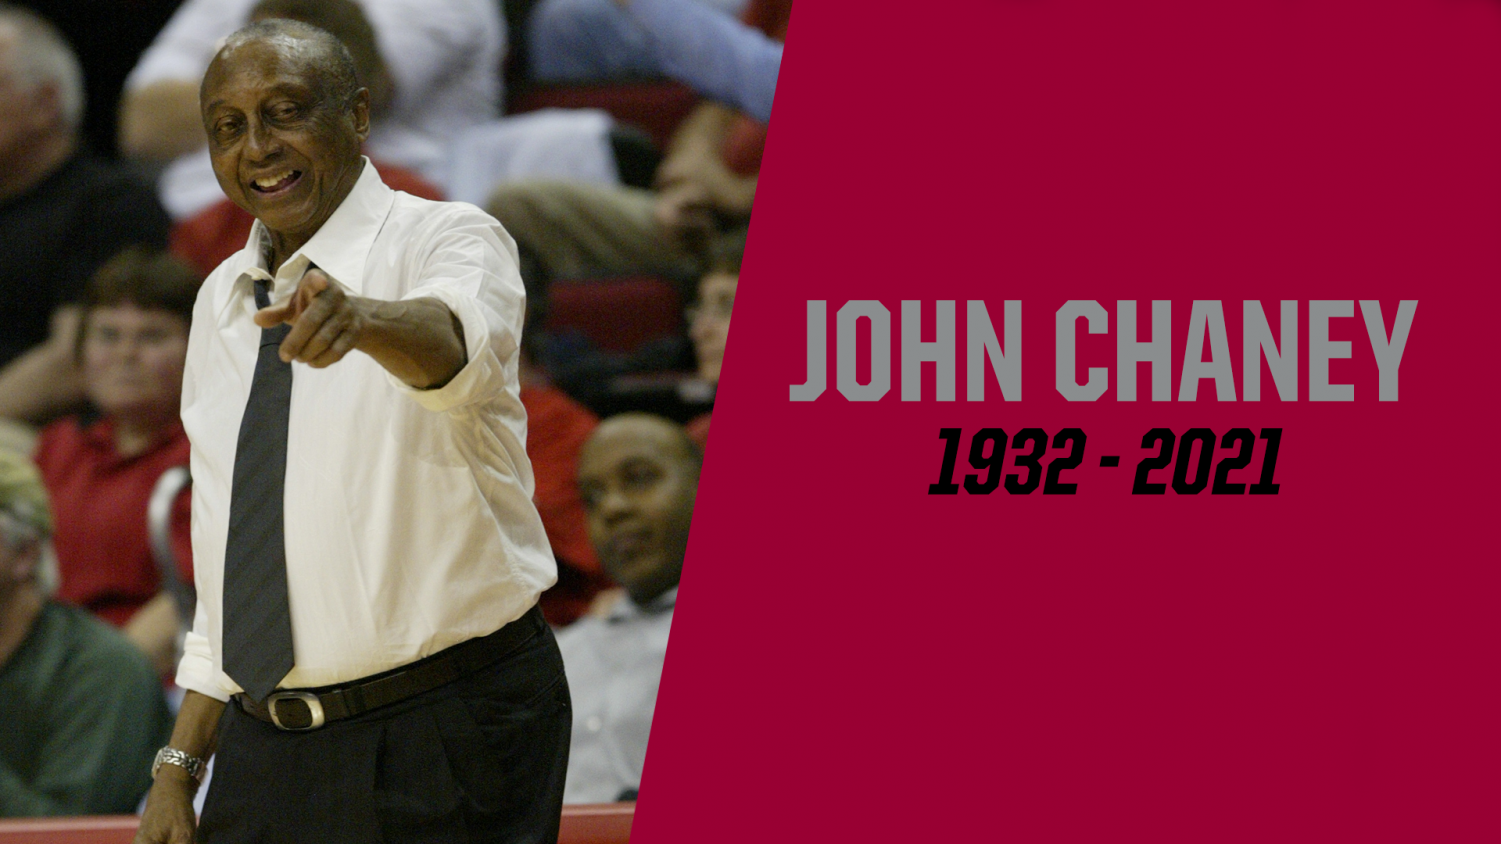 John Chaney: A Life Remembered